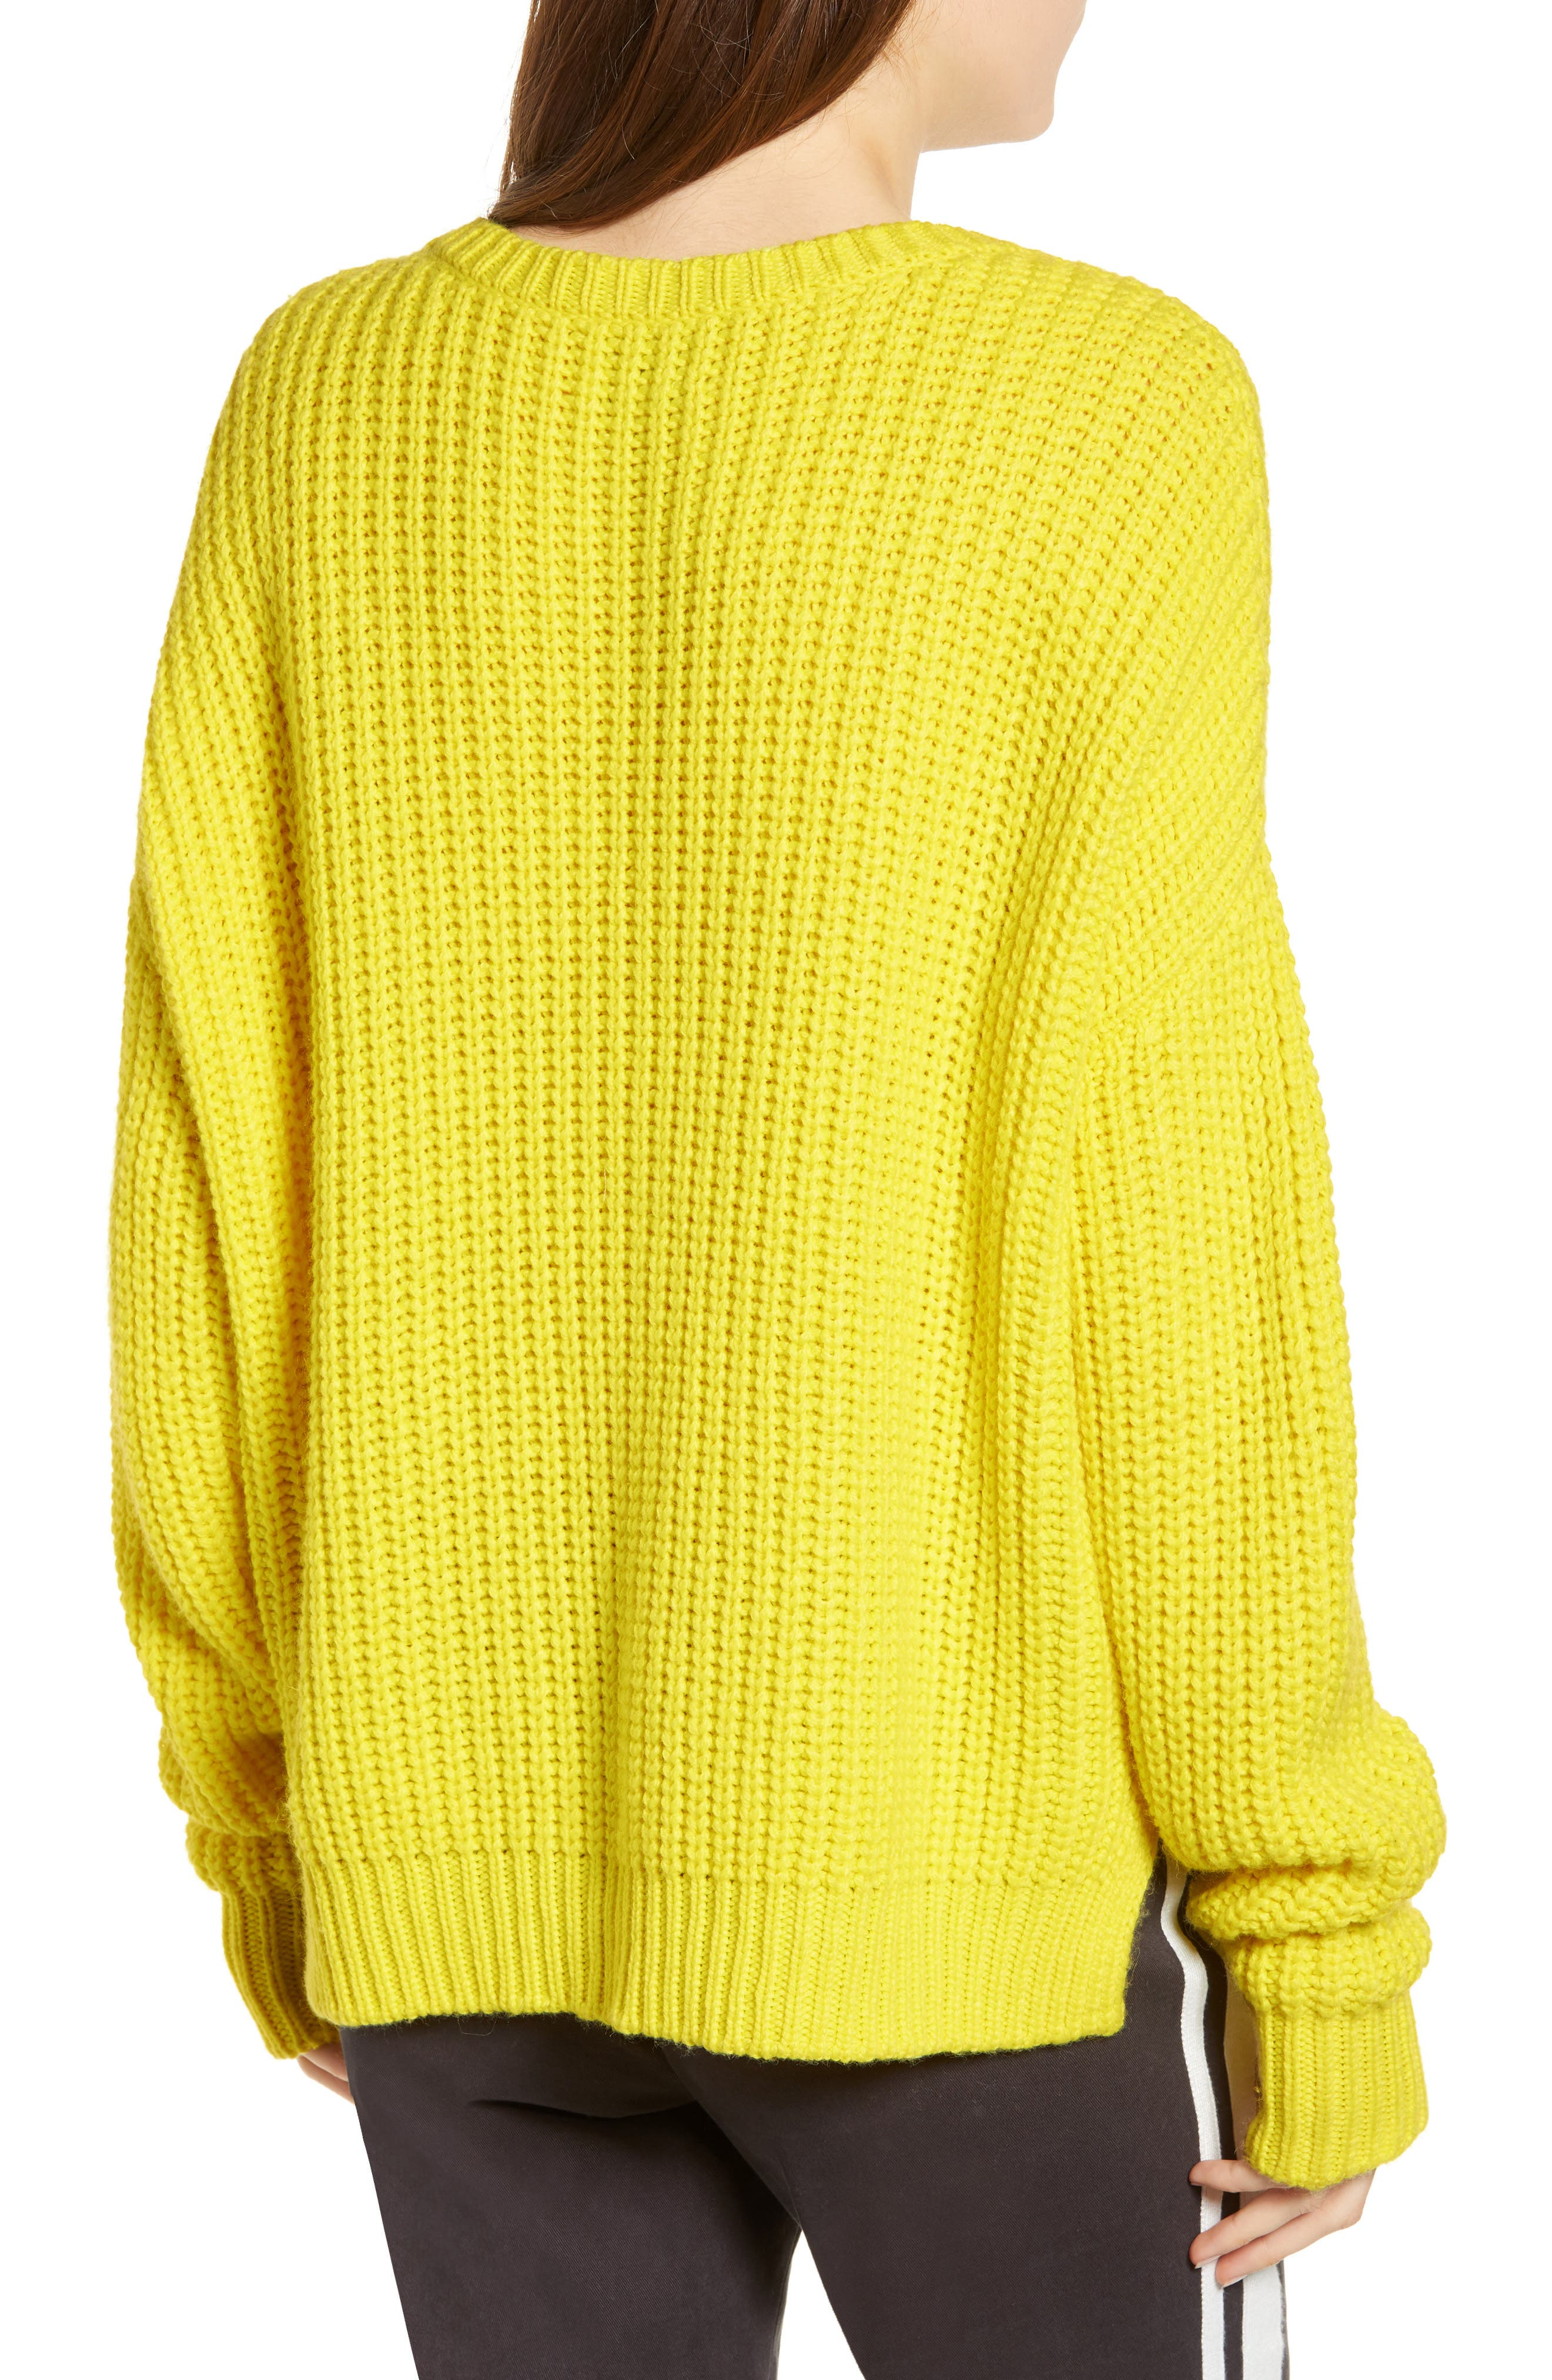 PAM & GELA, High/Low Sweater, Alternate thumbnail 2, color, 729